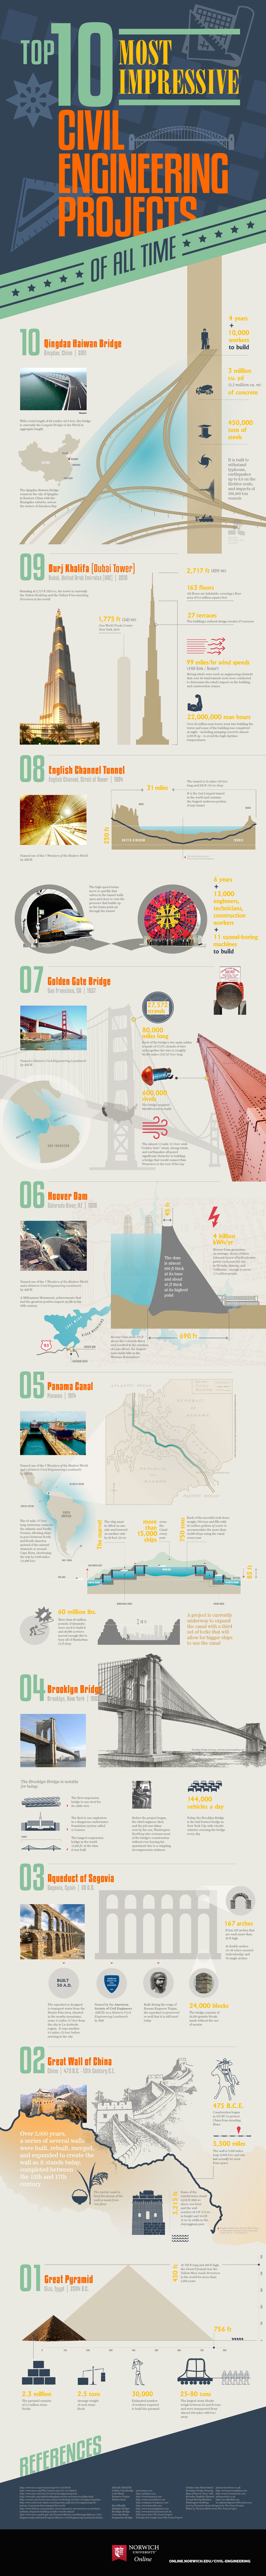 infographic on the most impressive engineering projects